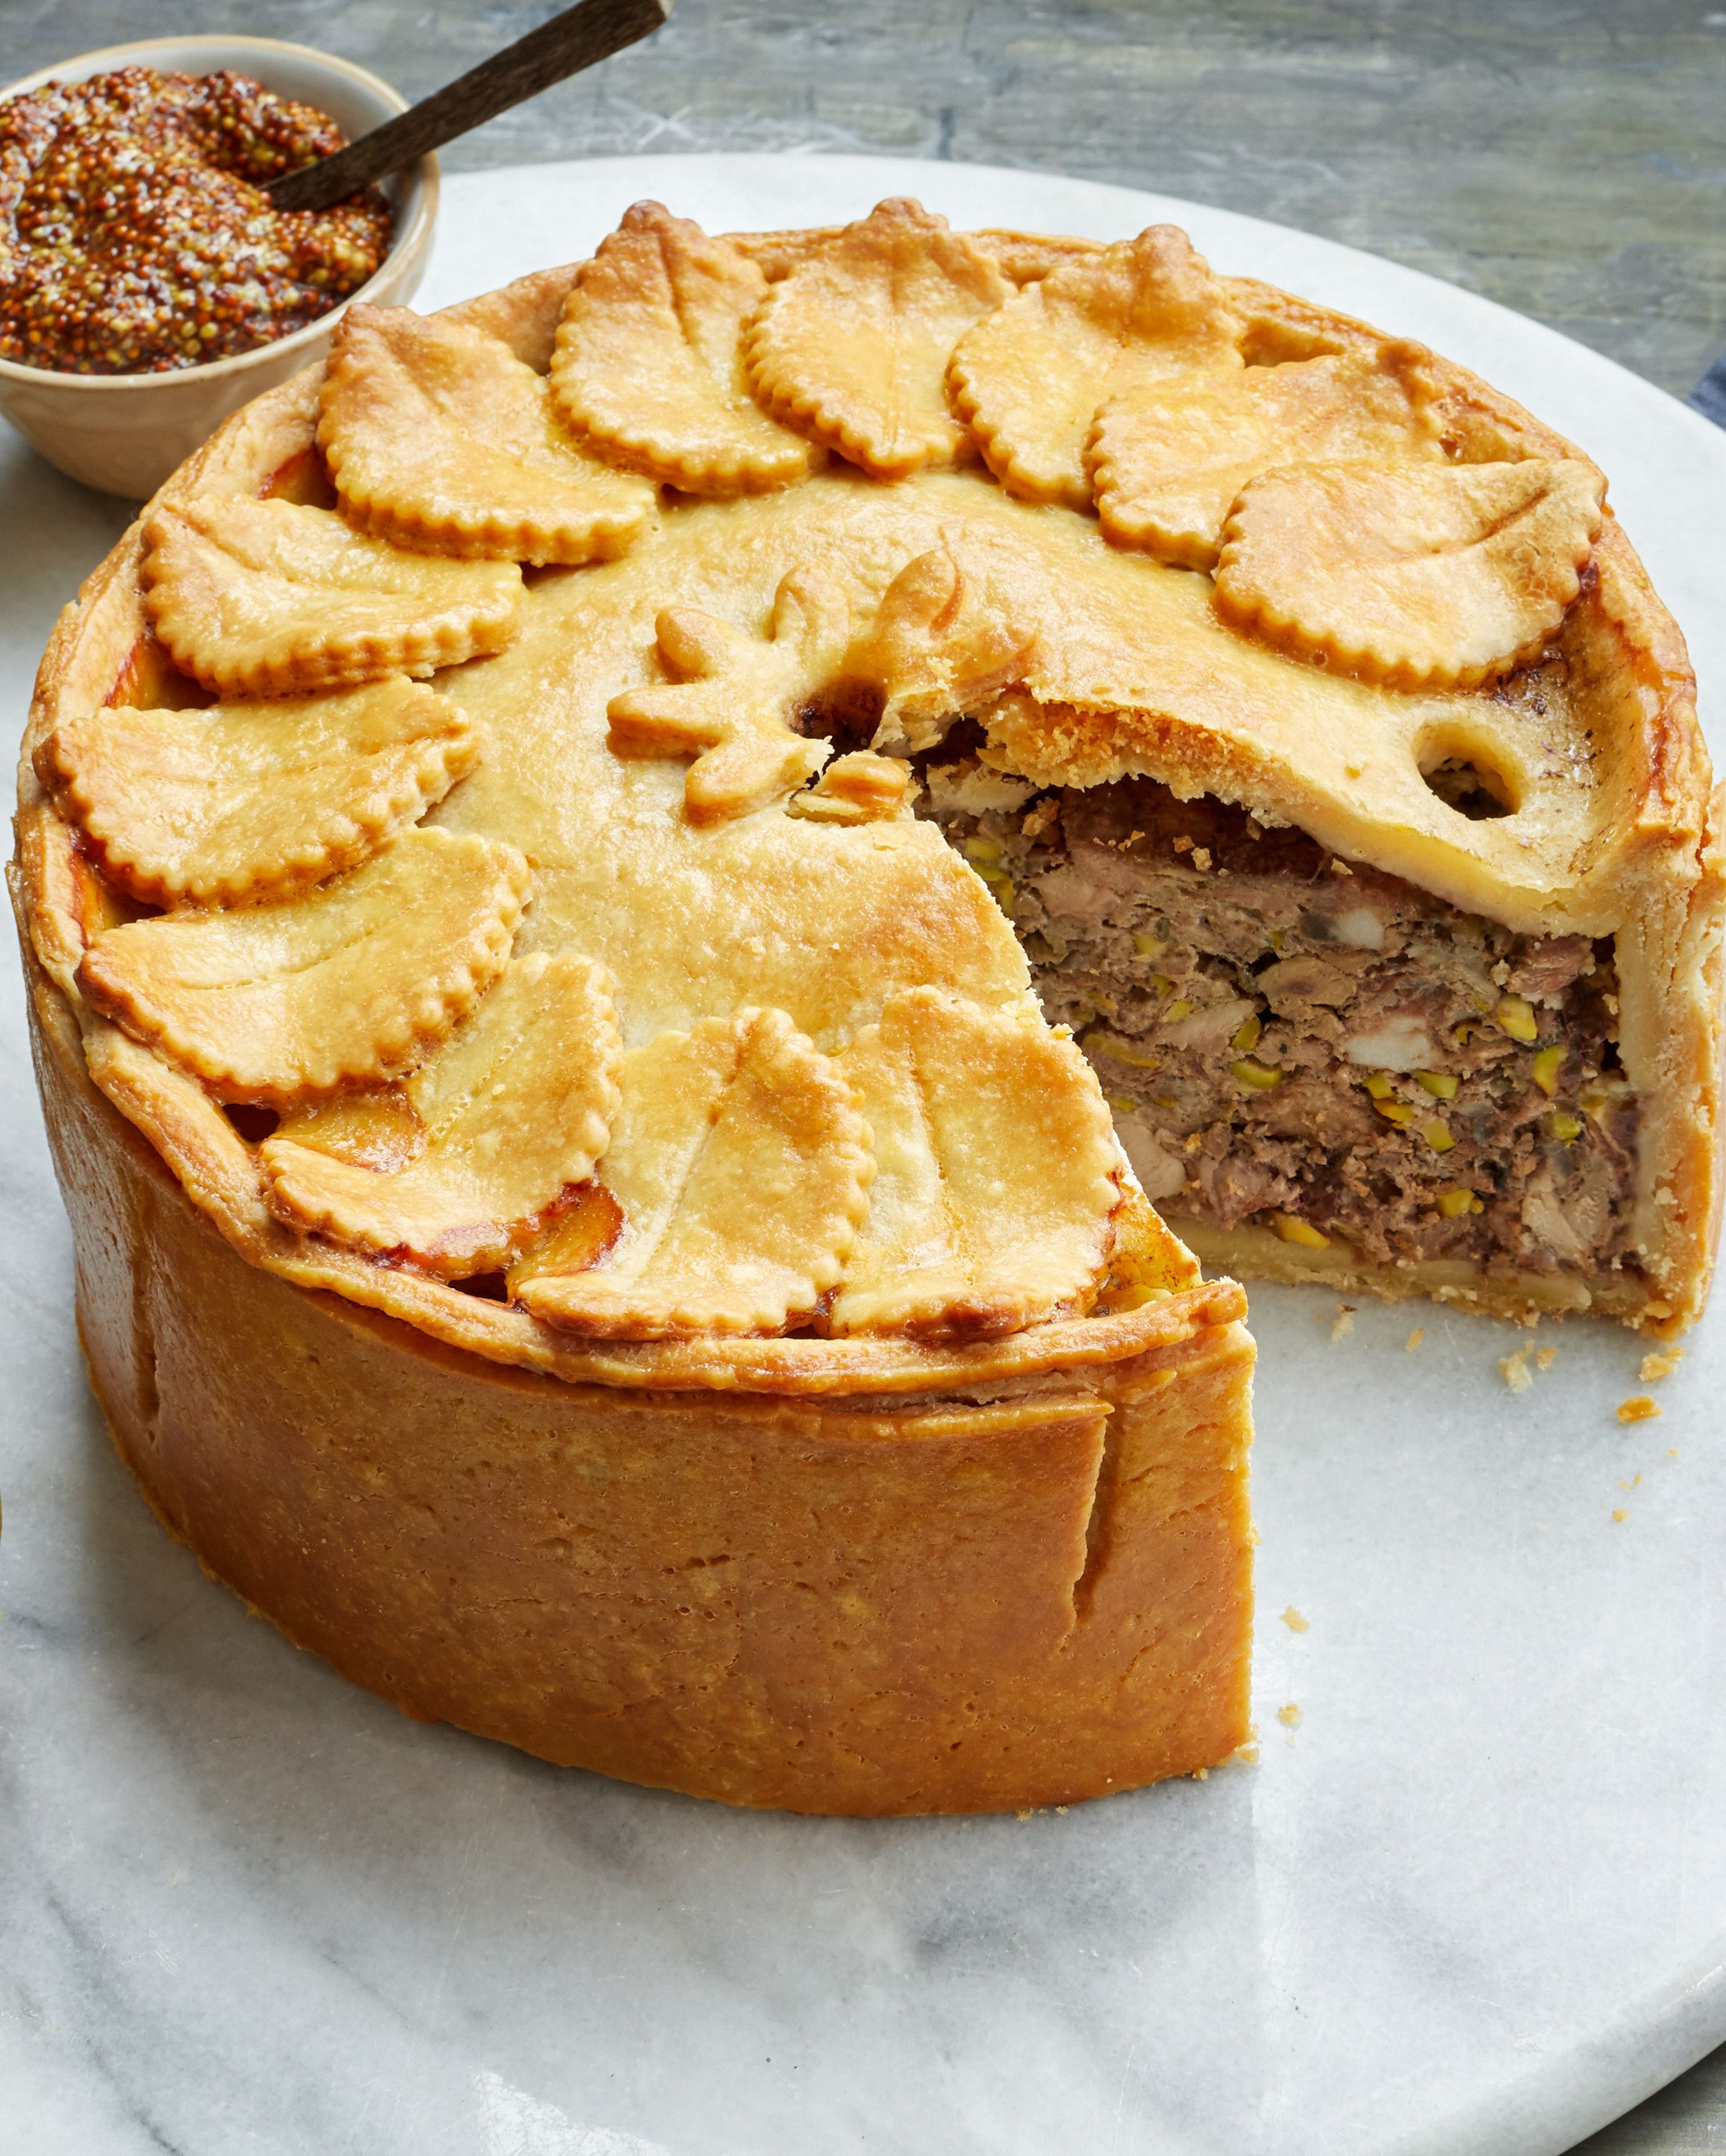 Meat Pie With Hot Water Crust Recipe Recipe Hot Water Crust Recipe Hot Water Crust Pastry Meat Pie